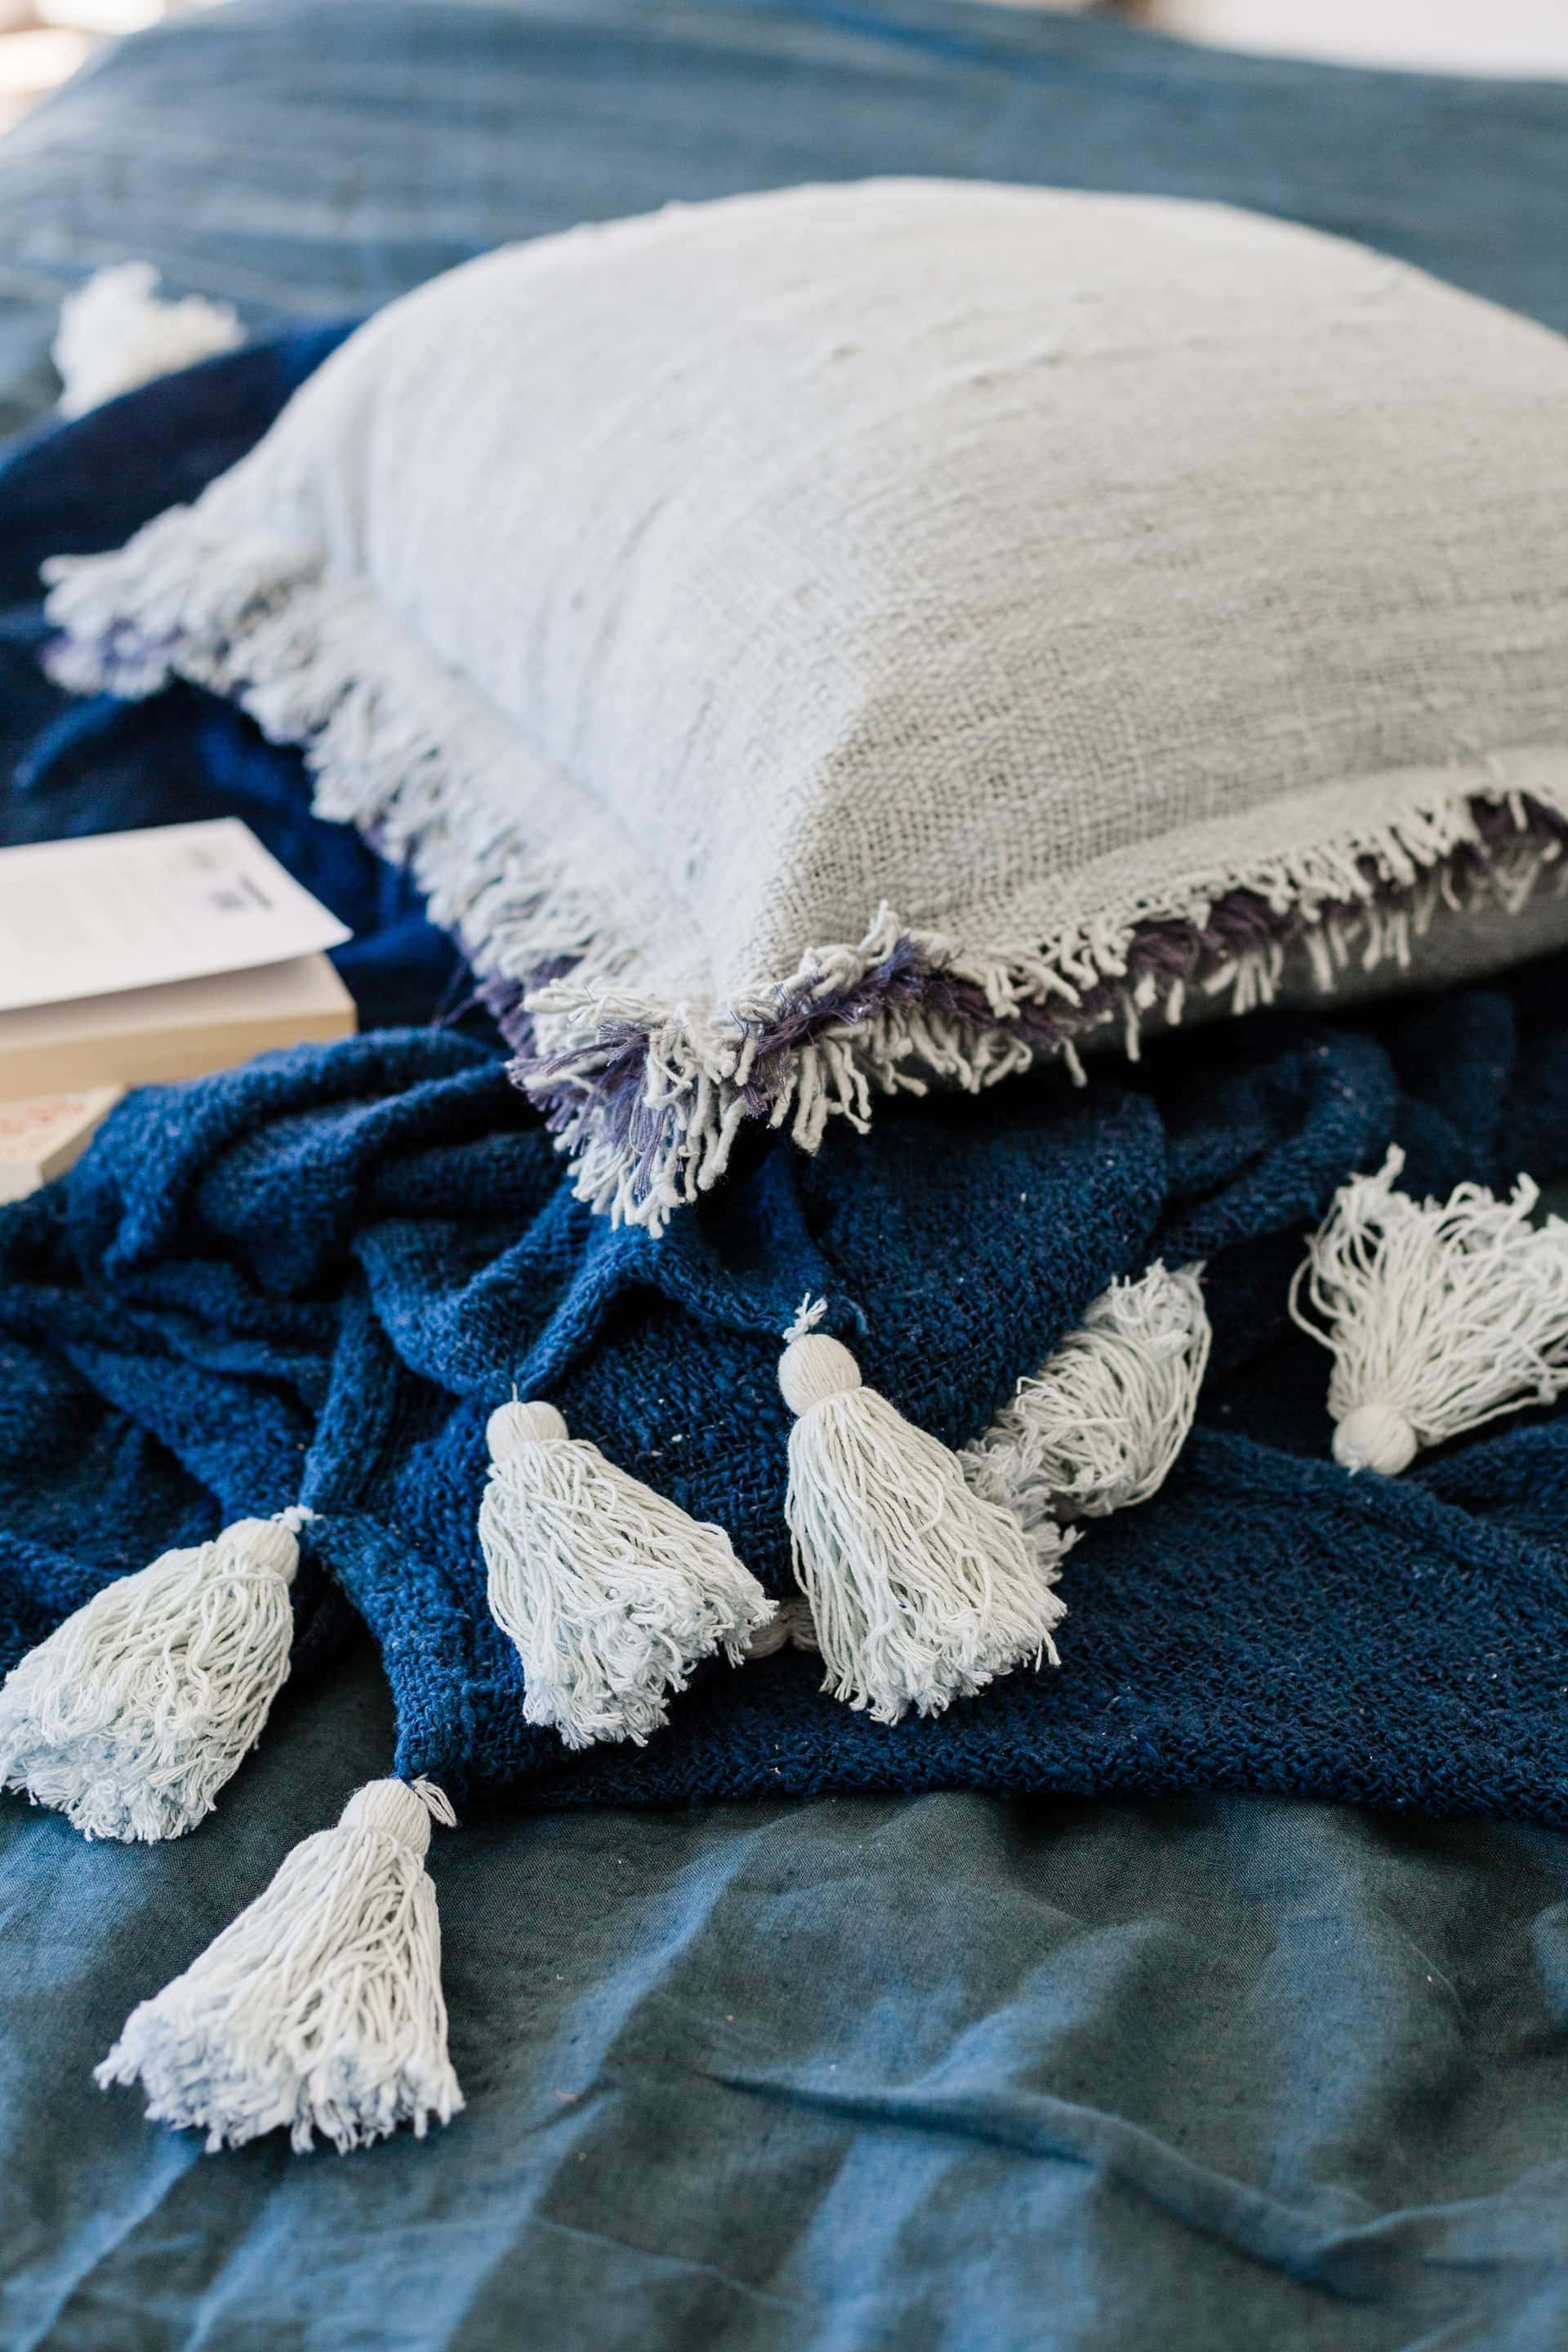 blue and green bed linen from southbound with white tassels